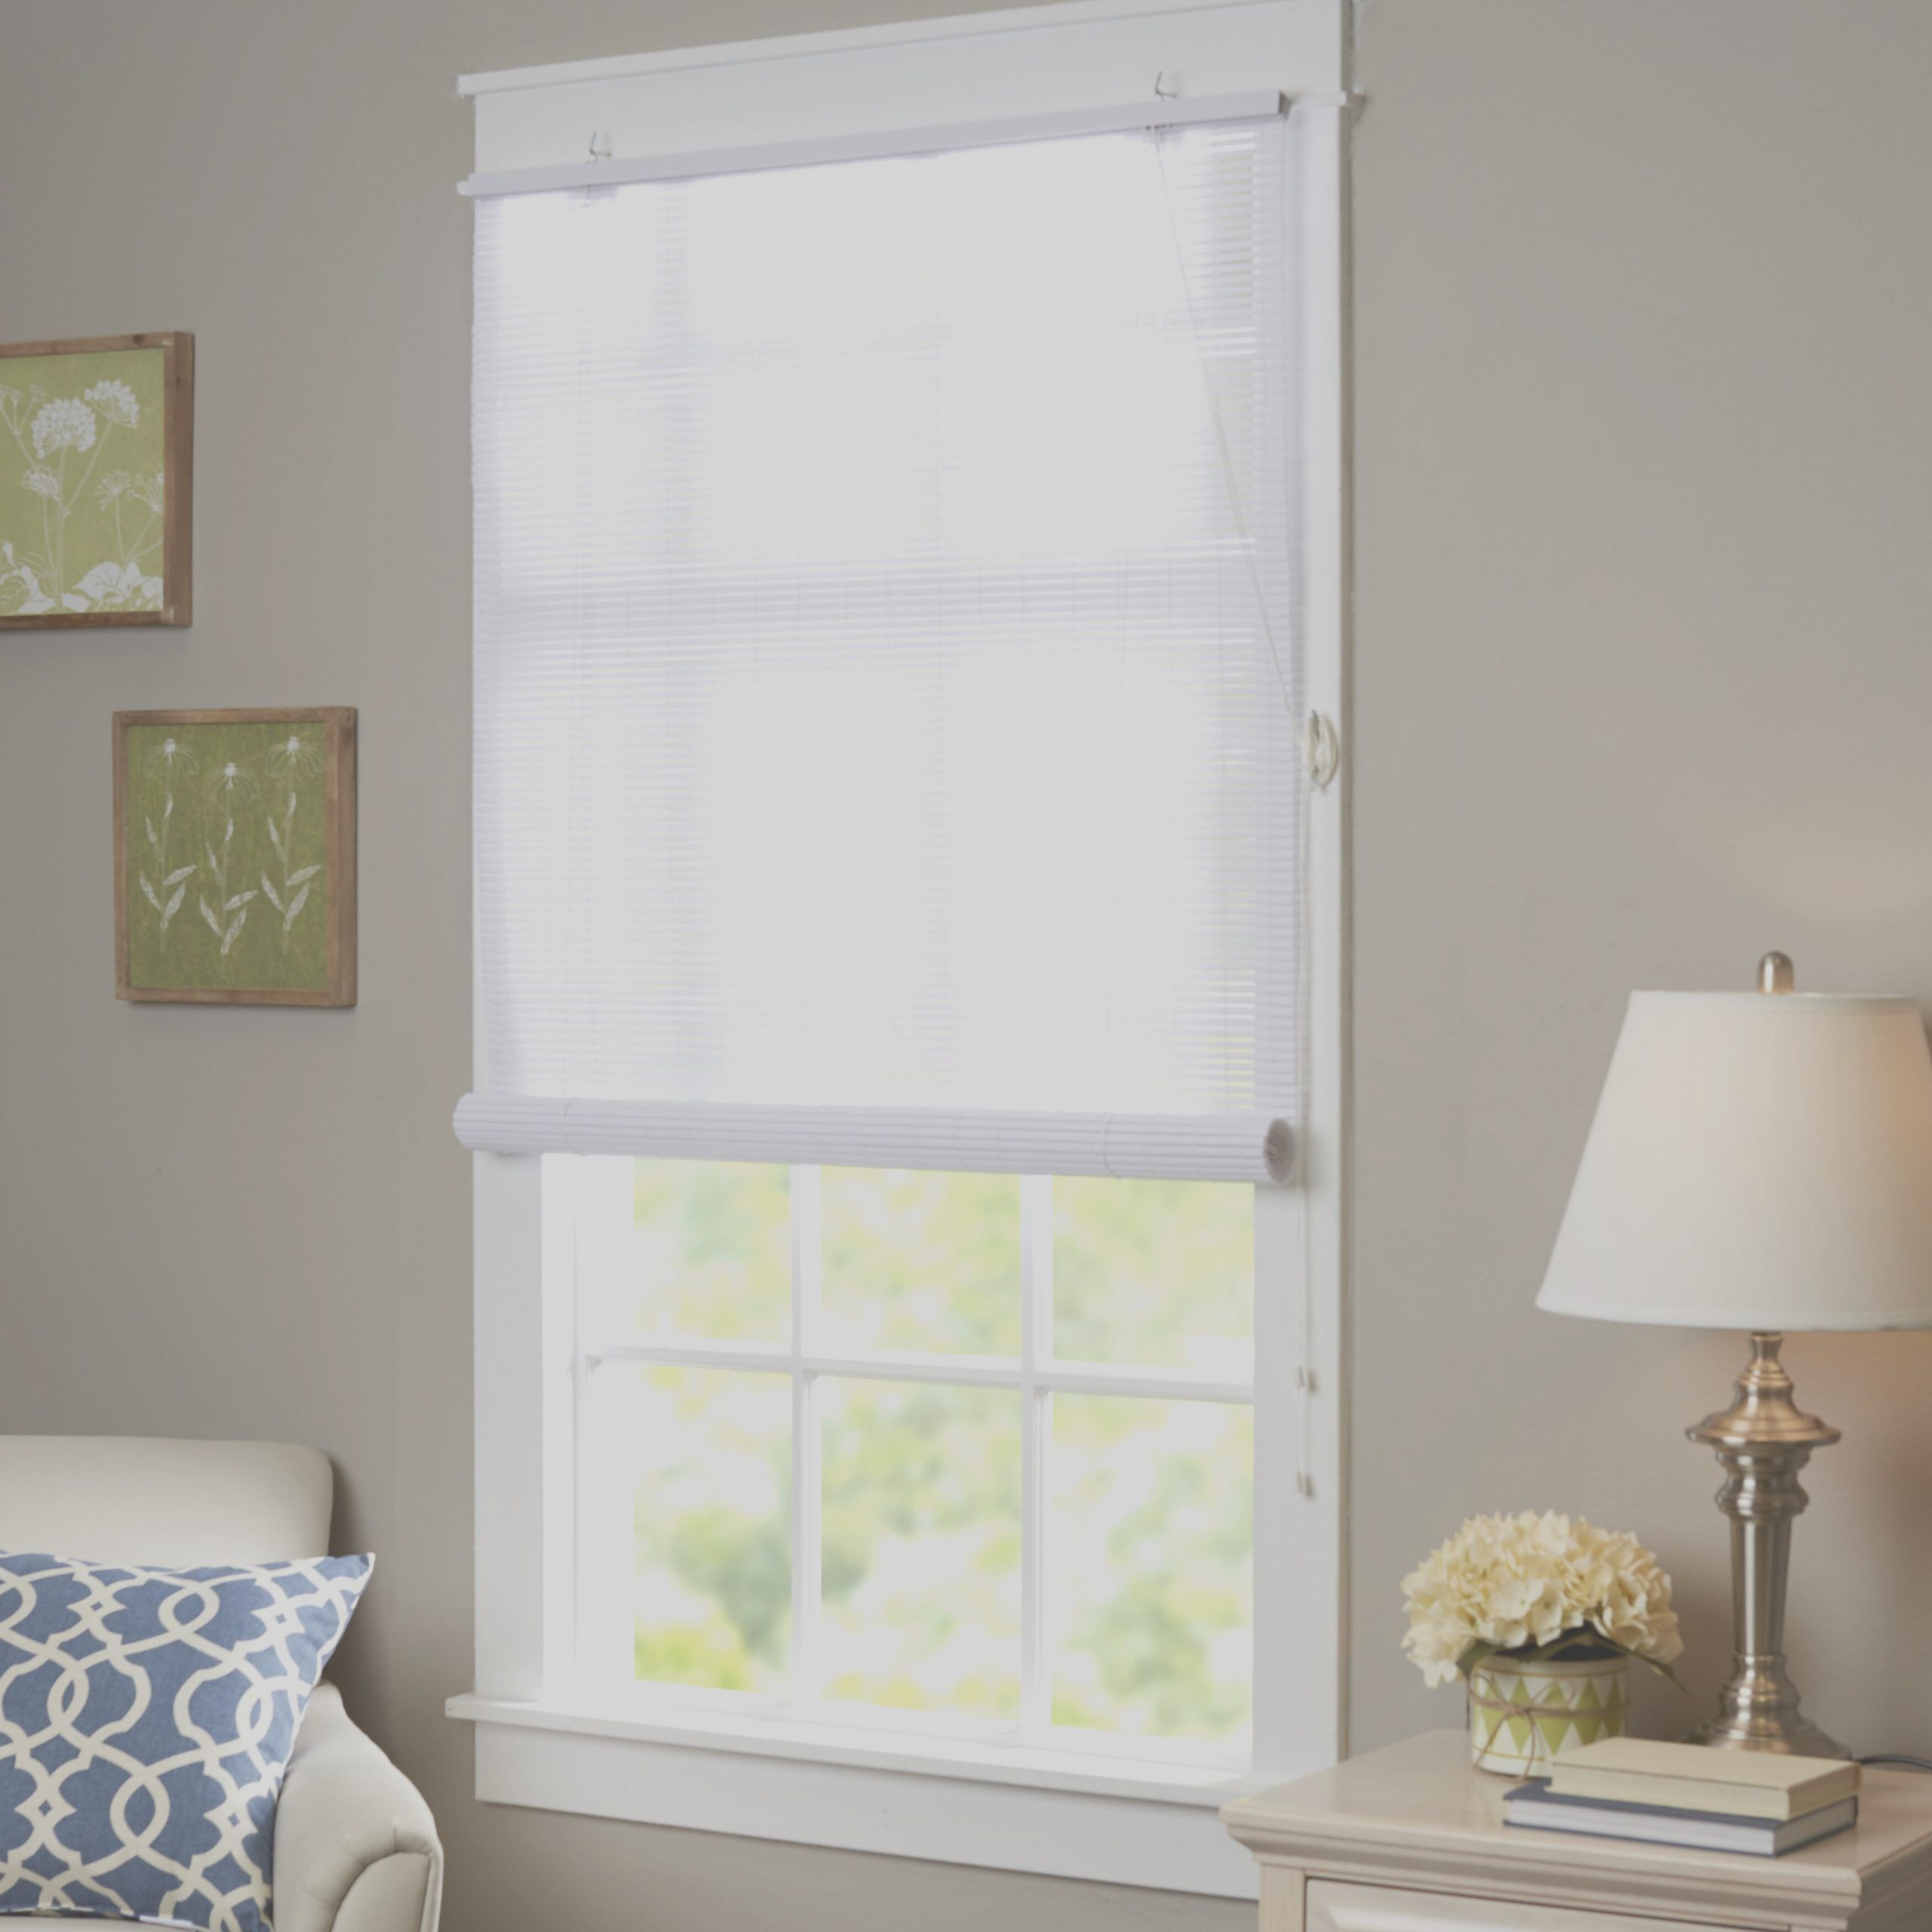 5 Pretty Kitchen Roller Blinds Wayfair Collection - #blinds